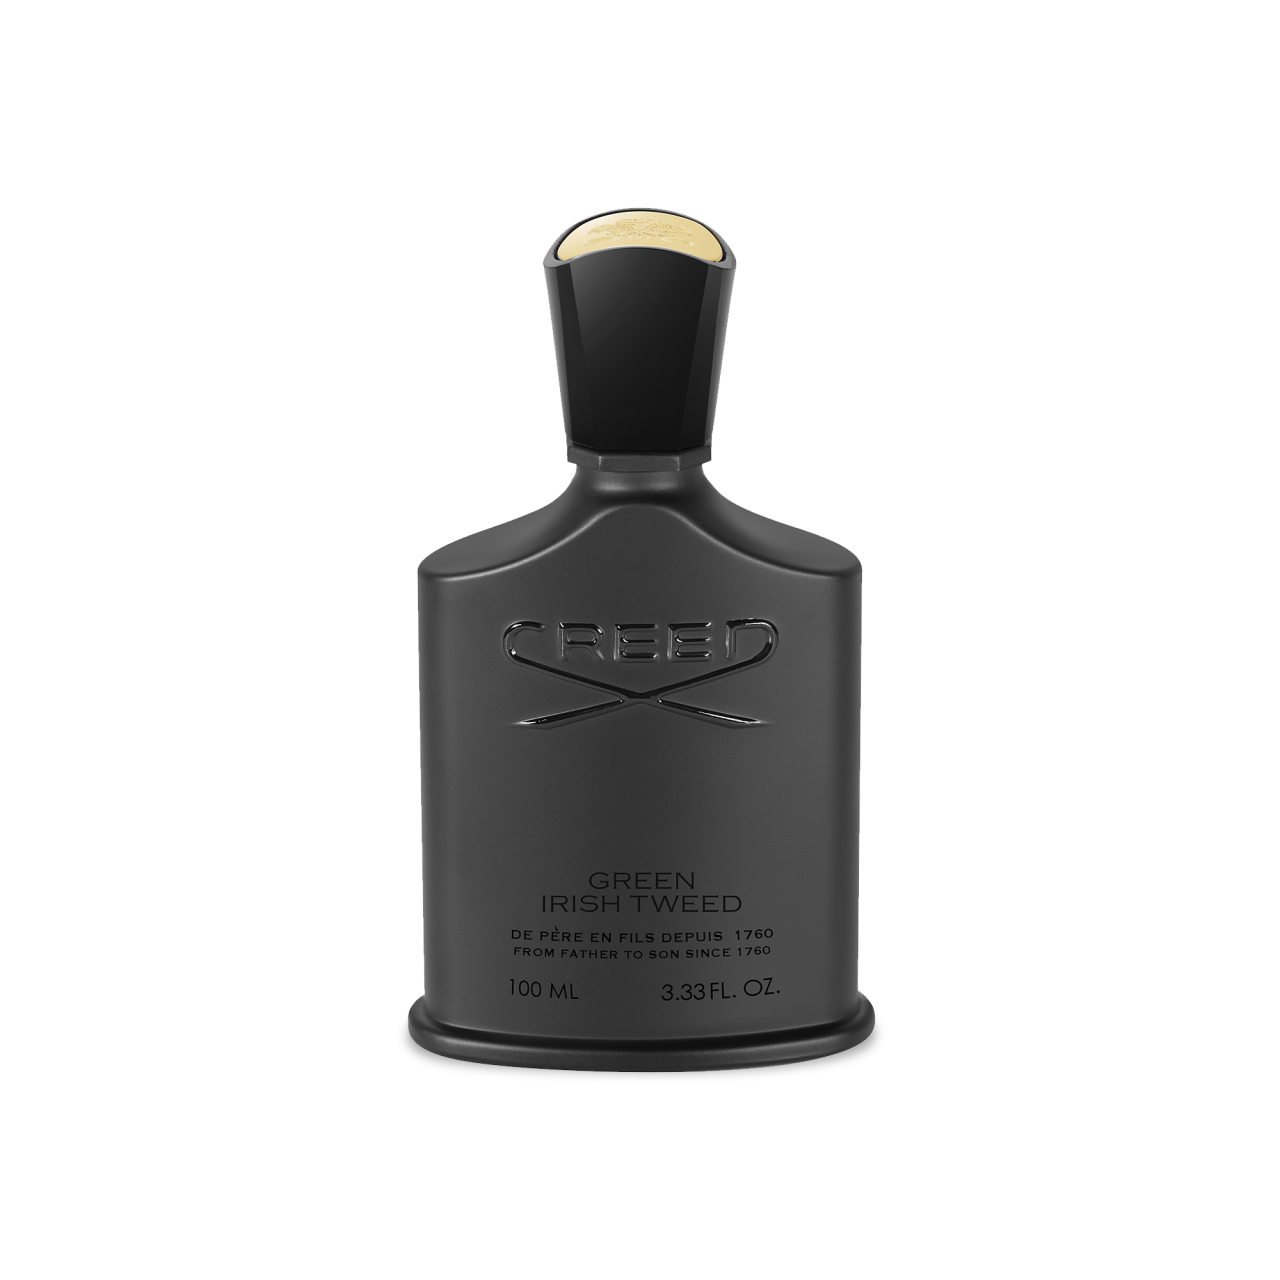 Green Irish Tweed Best Selling Mens Fragrance Creed Boutique